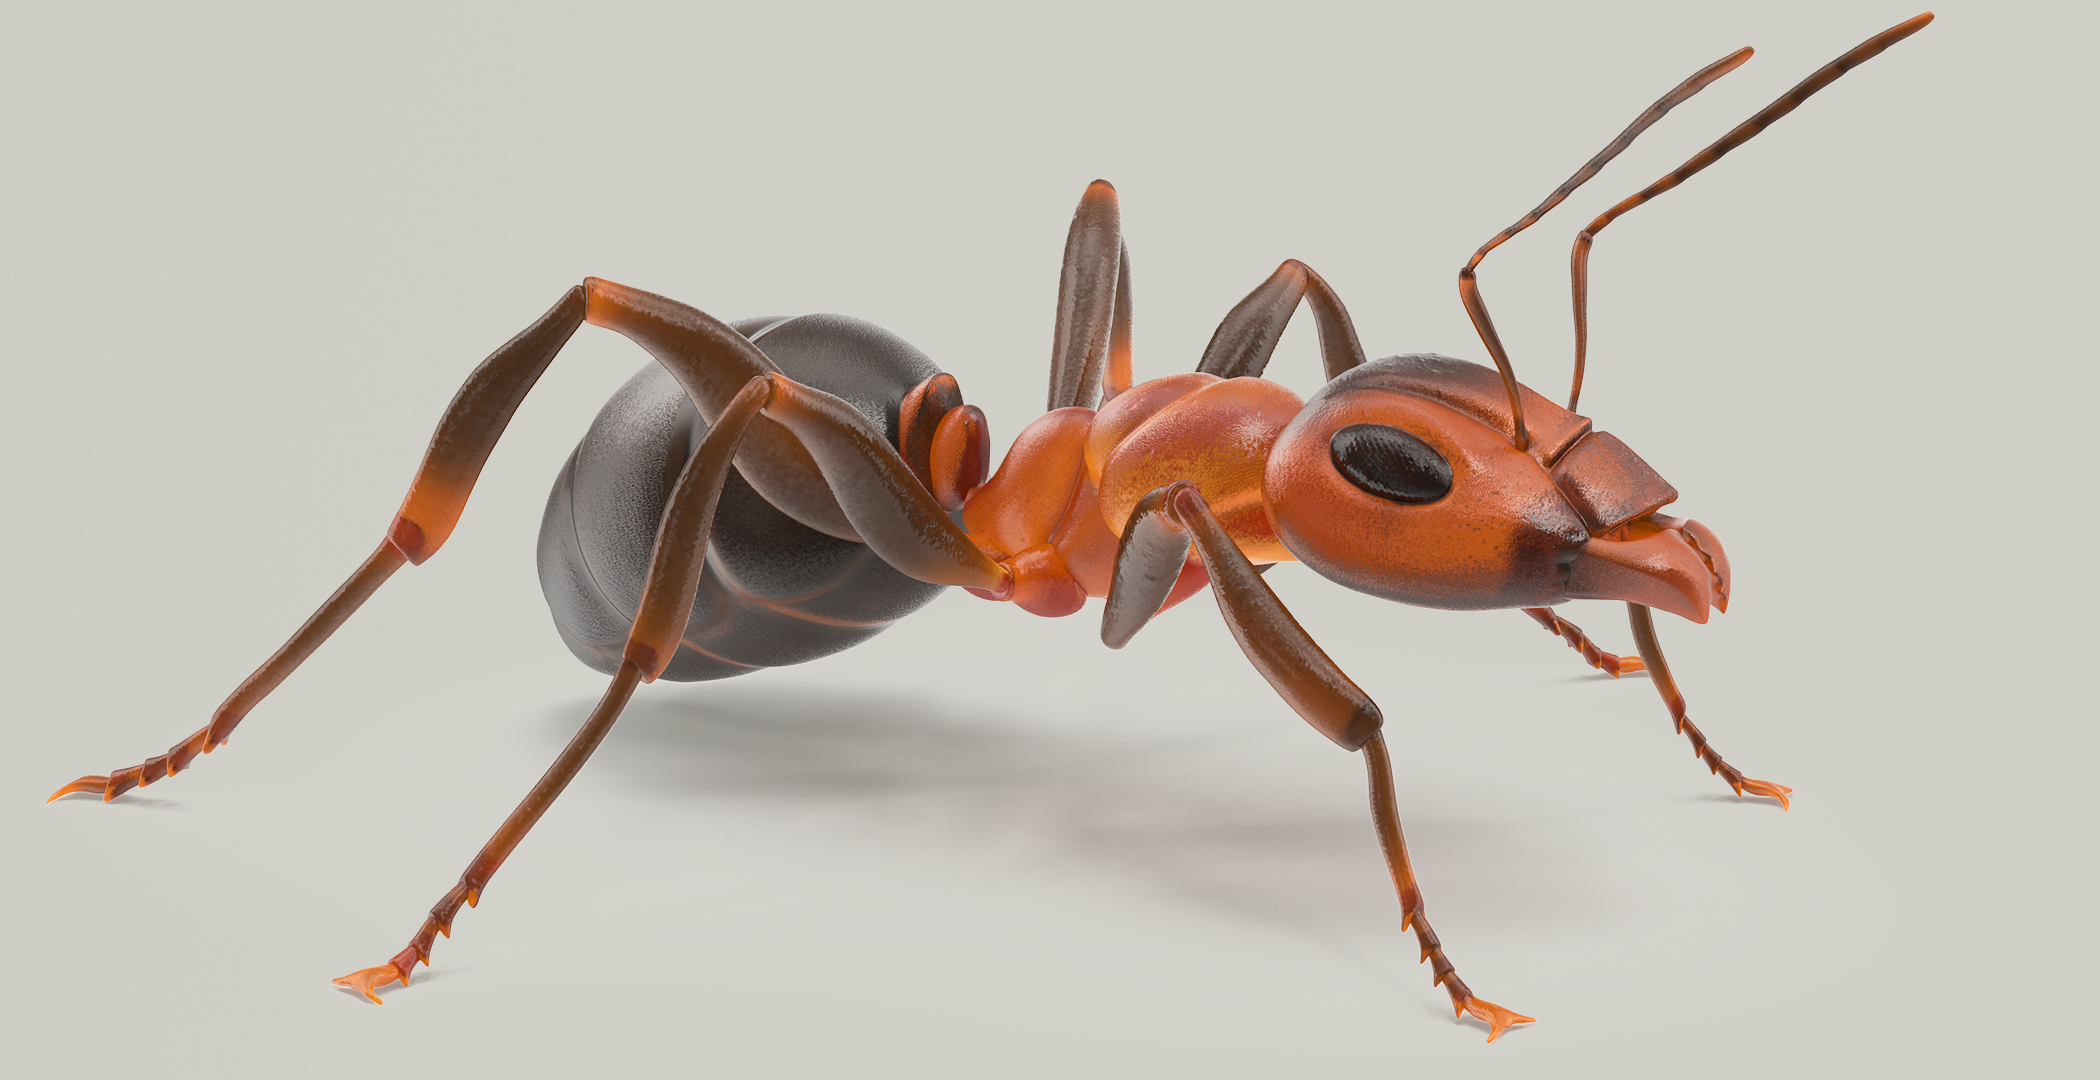 Ant Insect